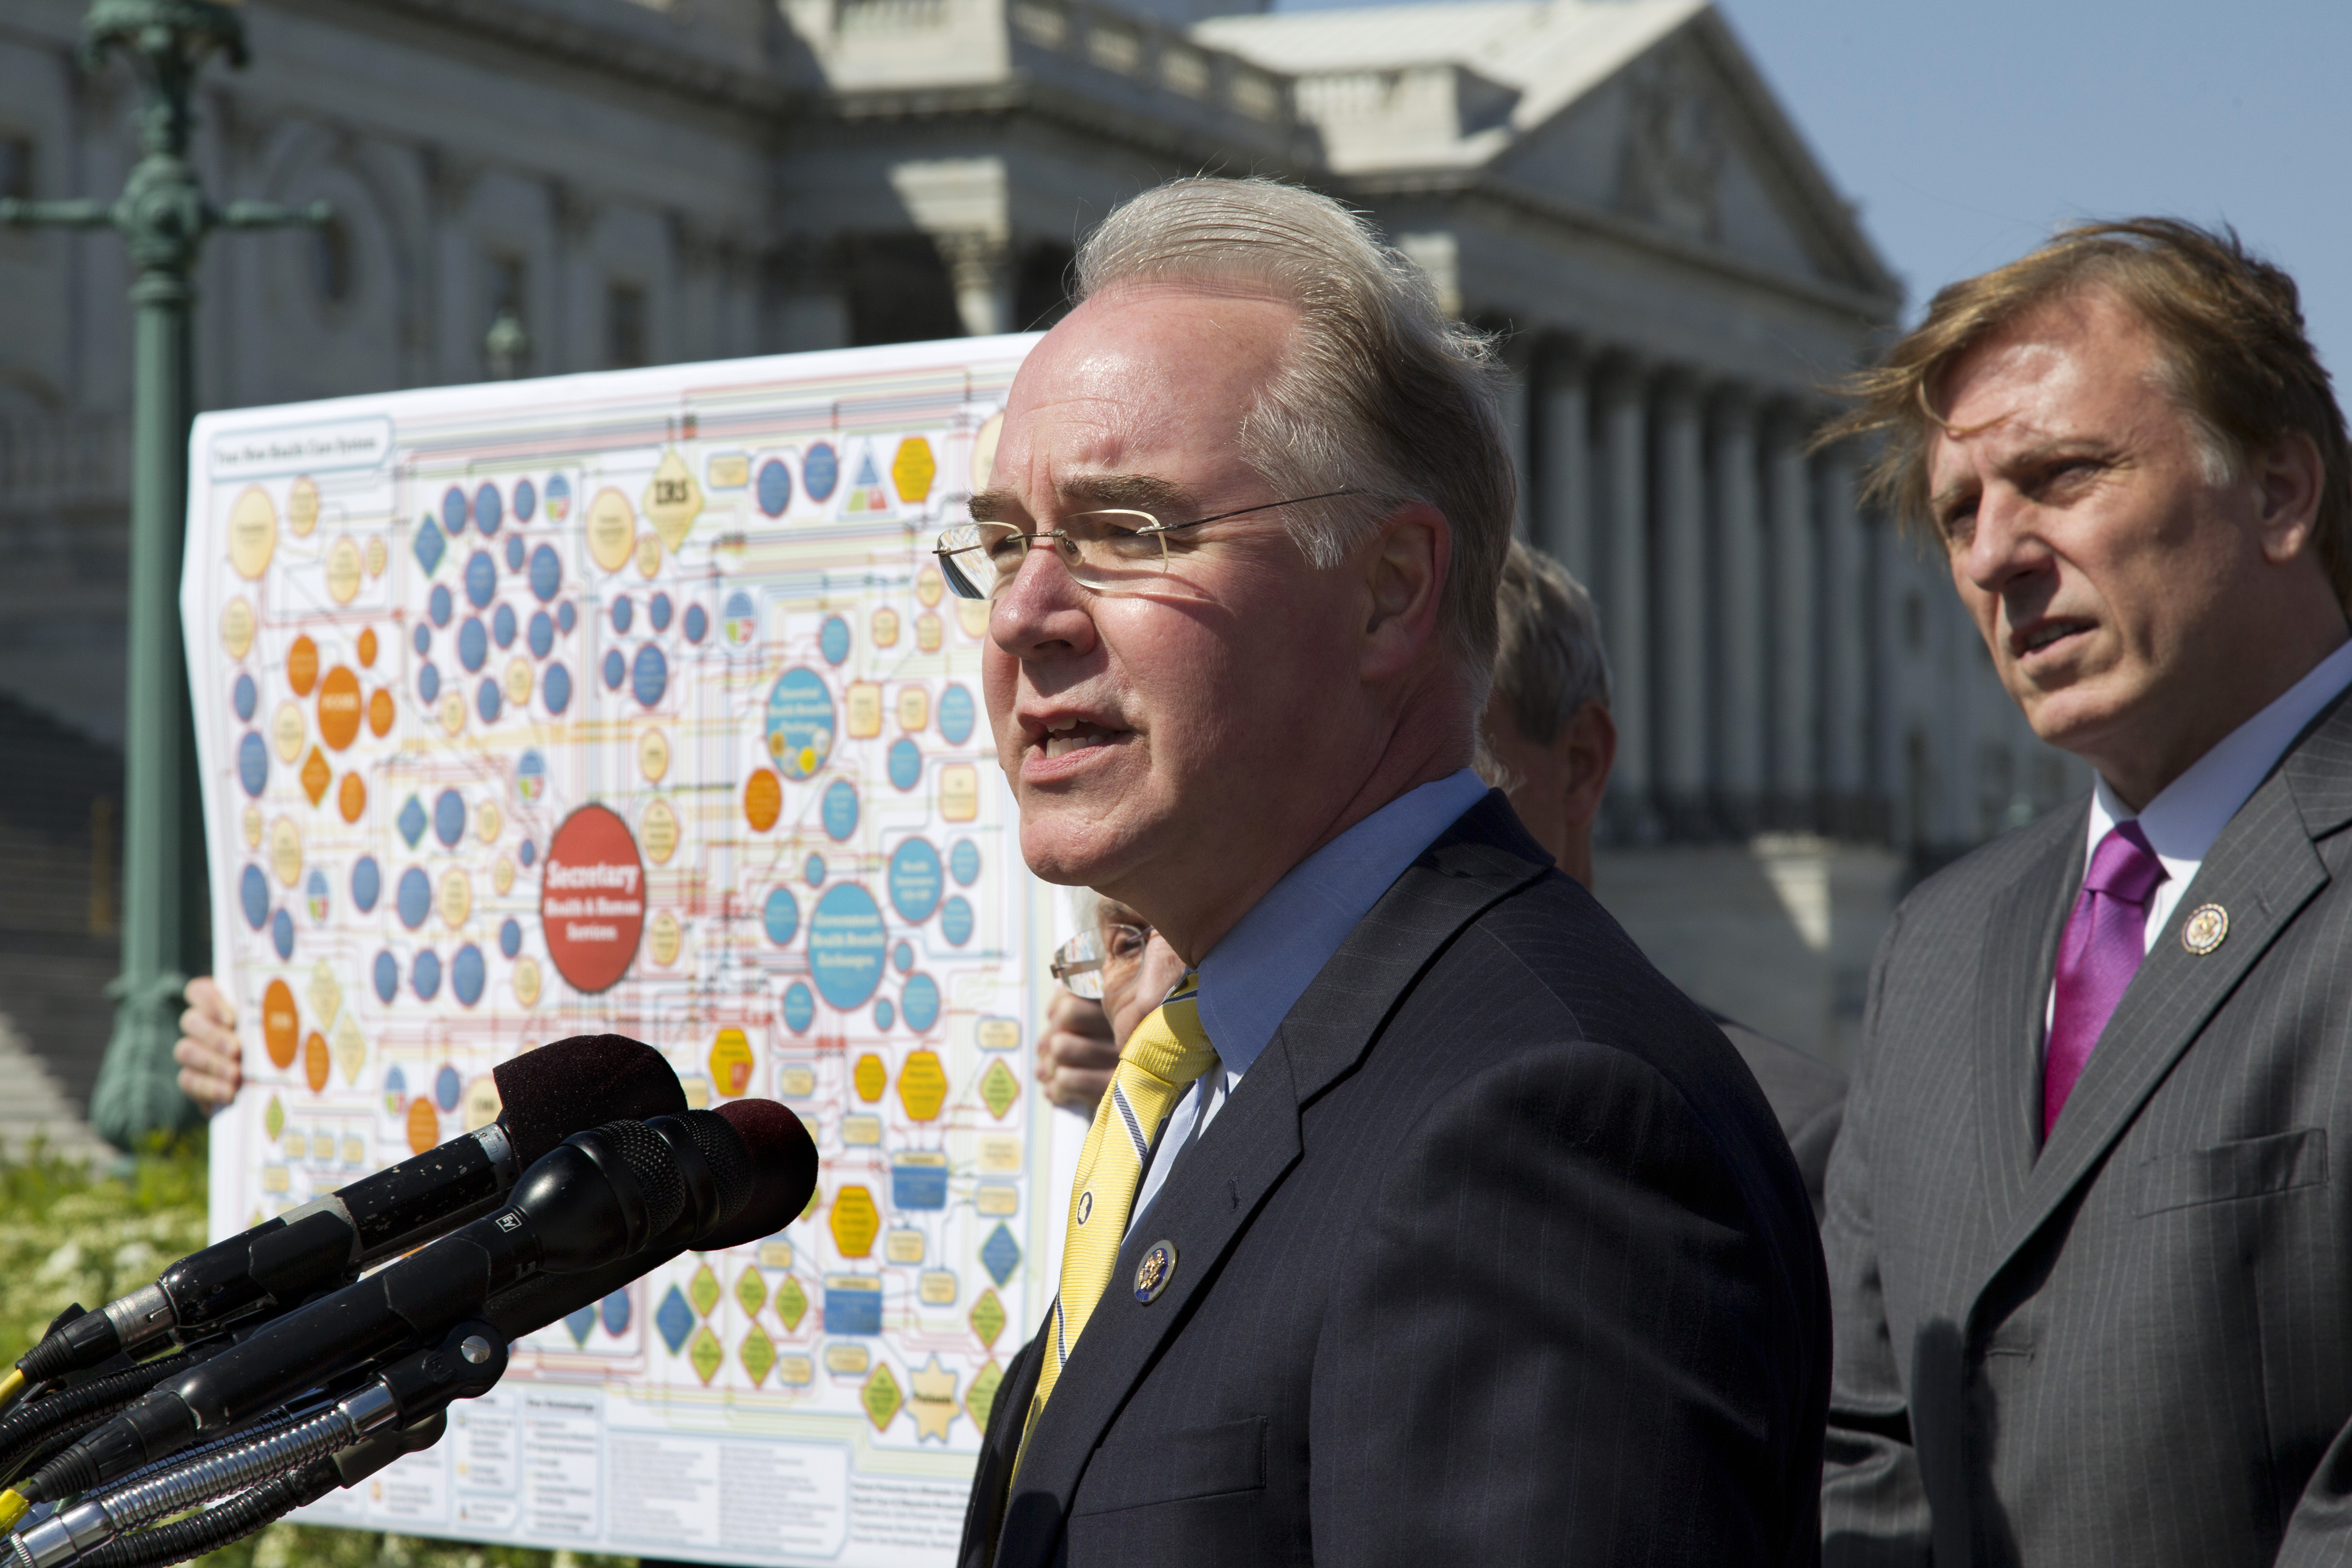 FILE - Rep. Tom Price, R-Ga., left, speaks during a news conference in Washington, March 26, 2012, to oppose the Affordable Care Act, often referred to as Obamacare.